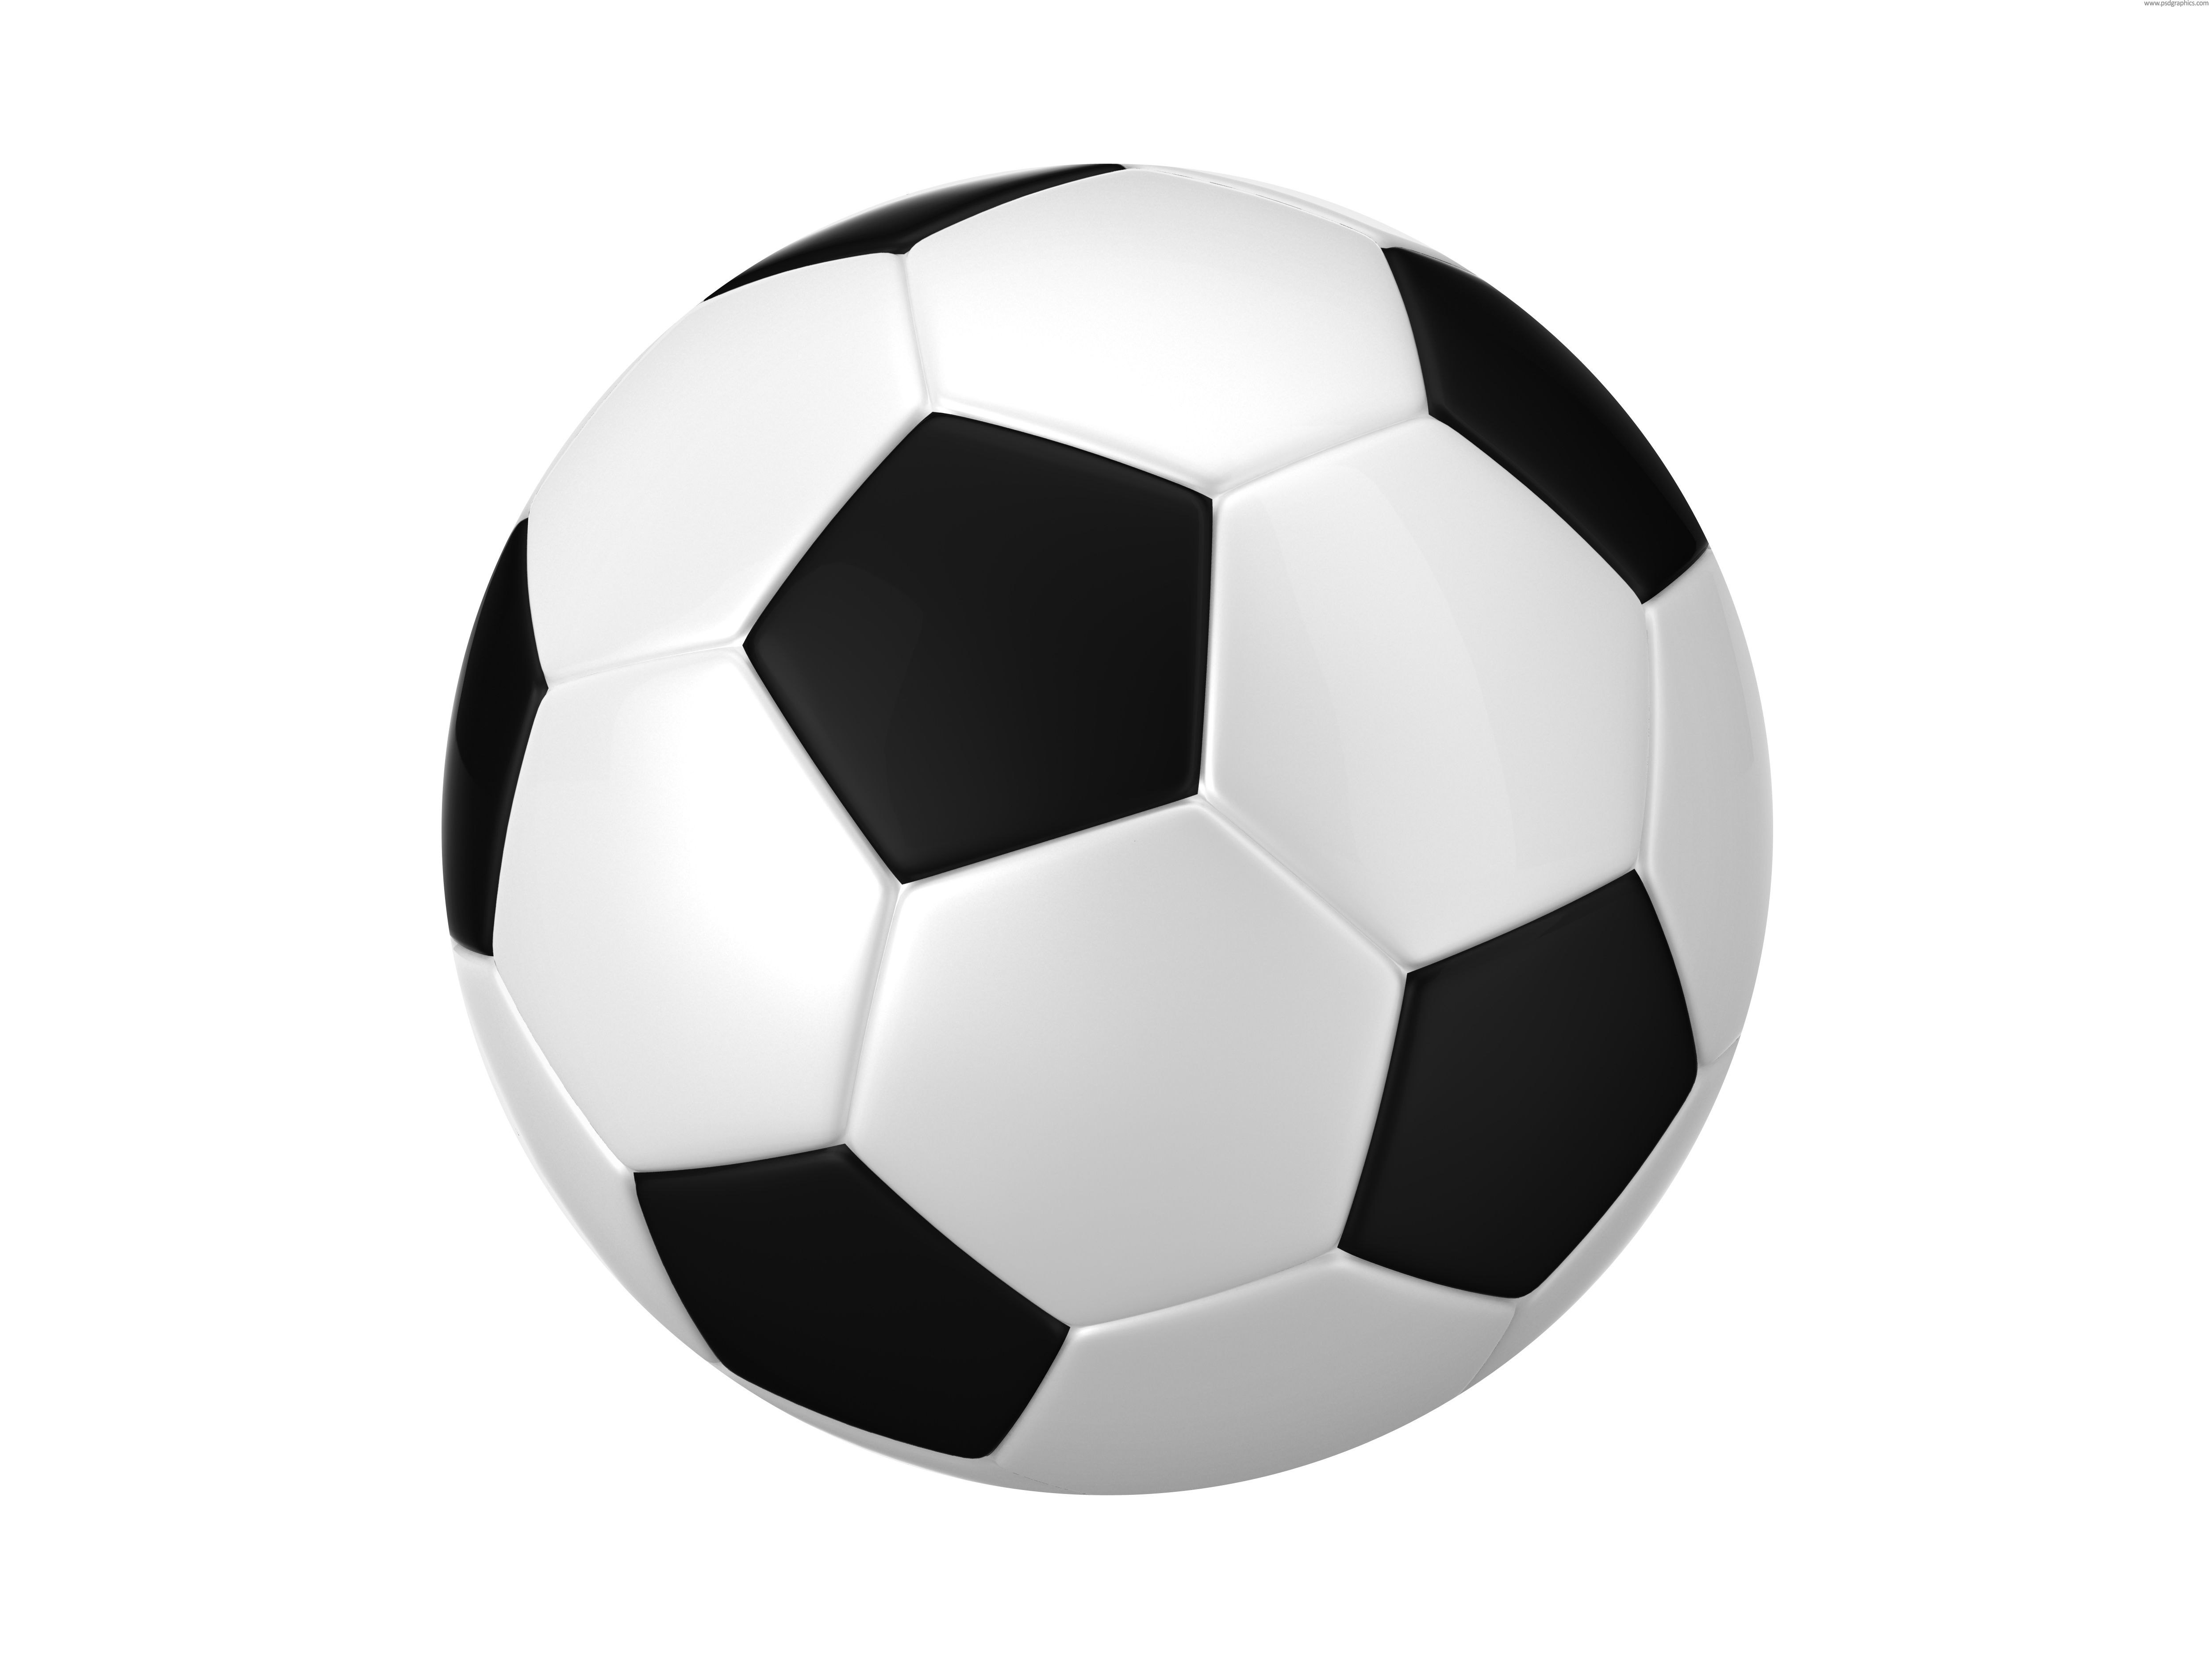 Free Football Ball, Download Free Clip Art, Free Clip Art on.